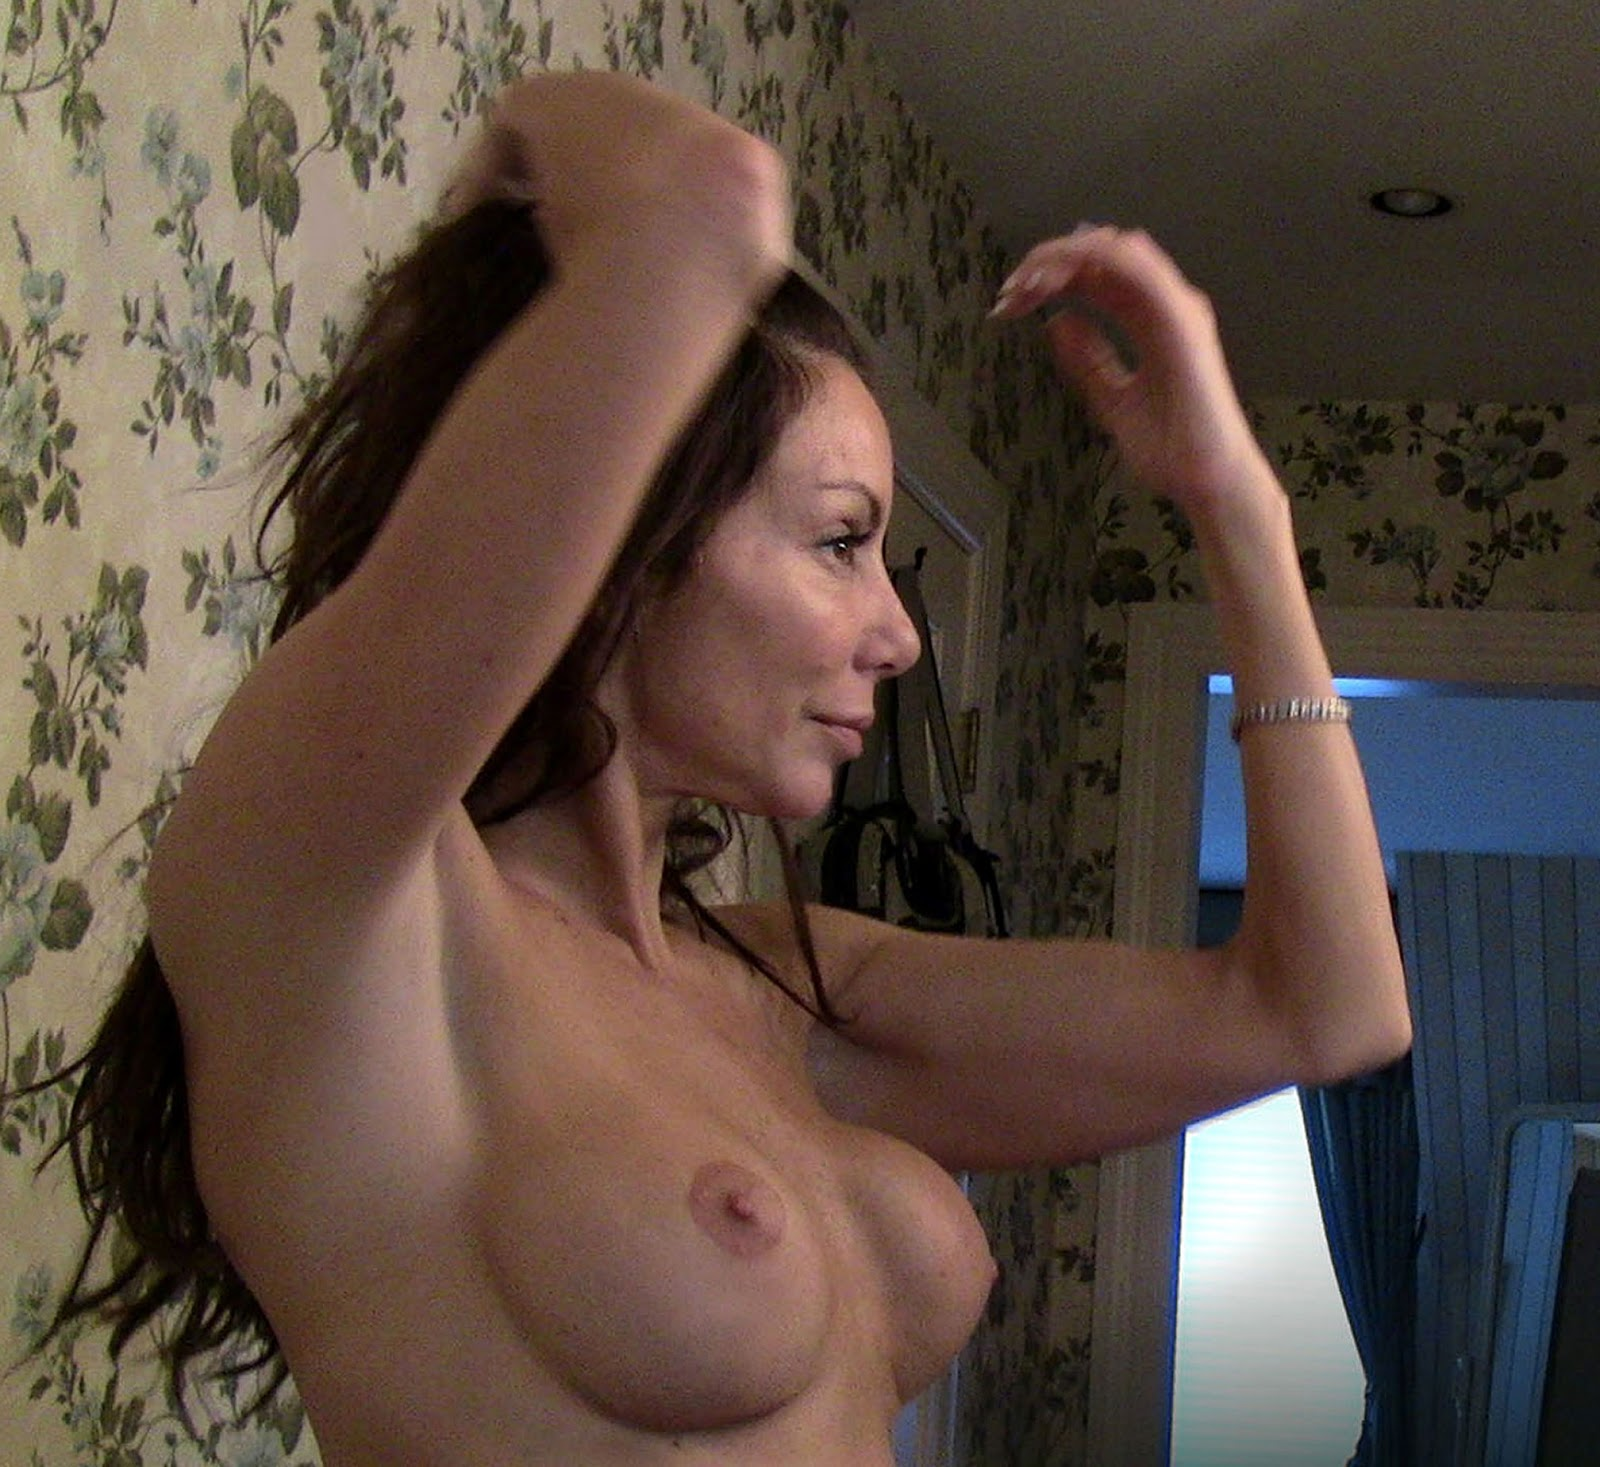 real-housewives-nude-self-pics